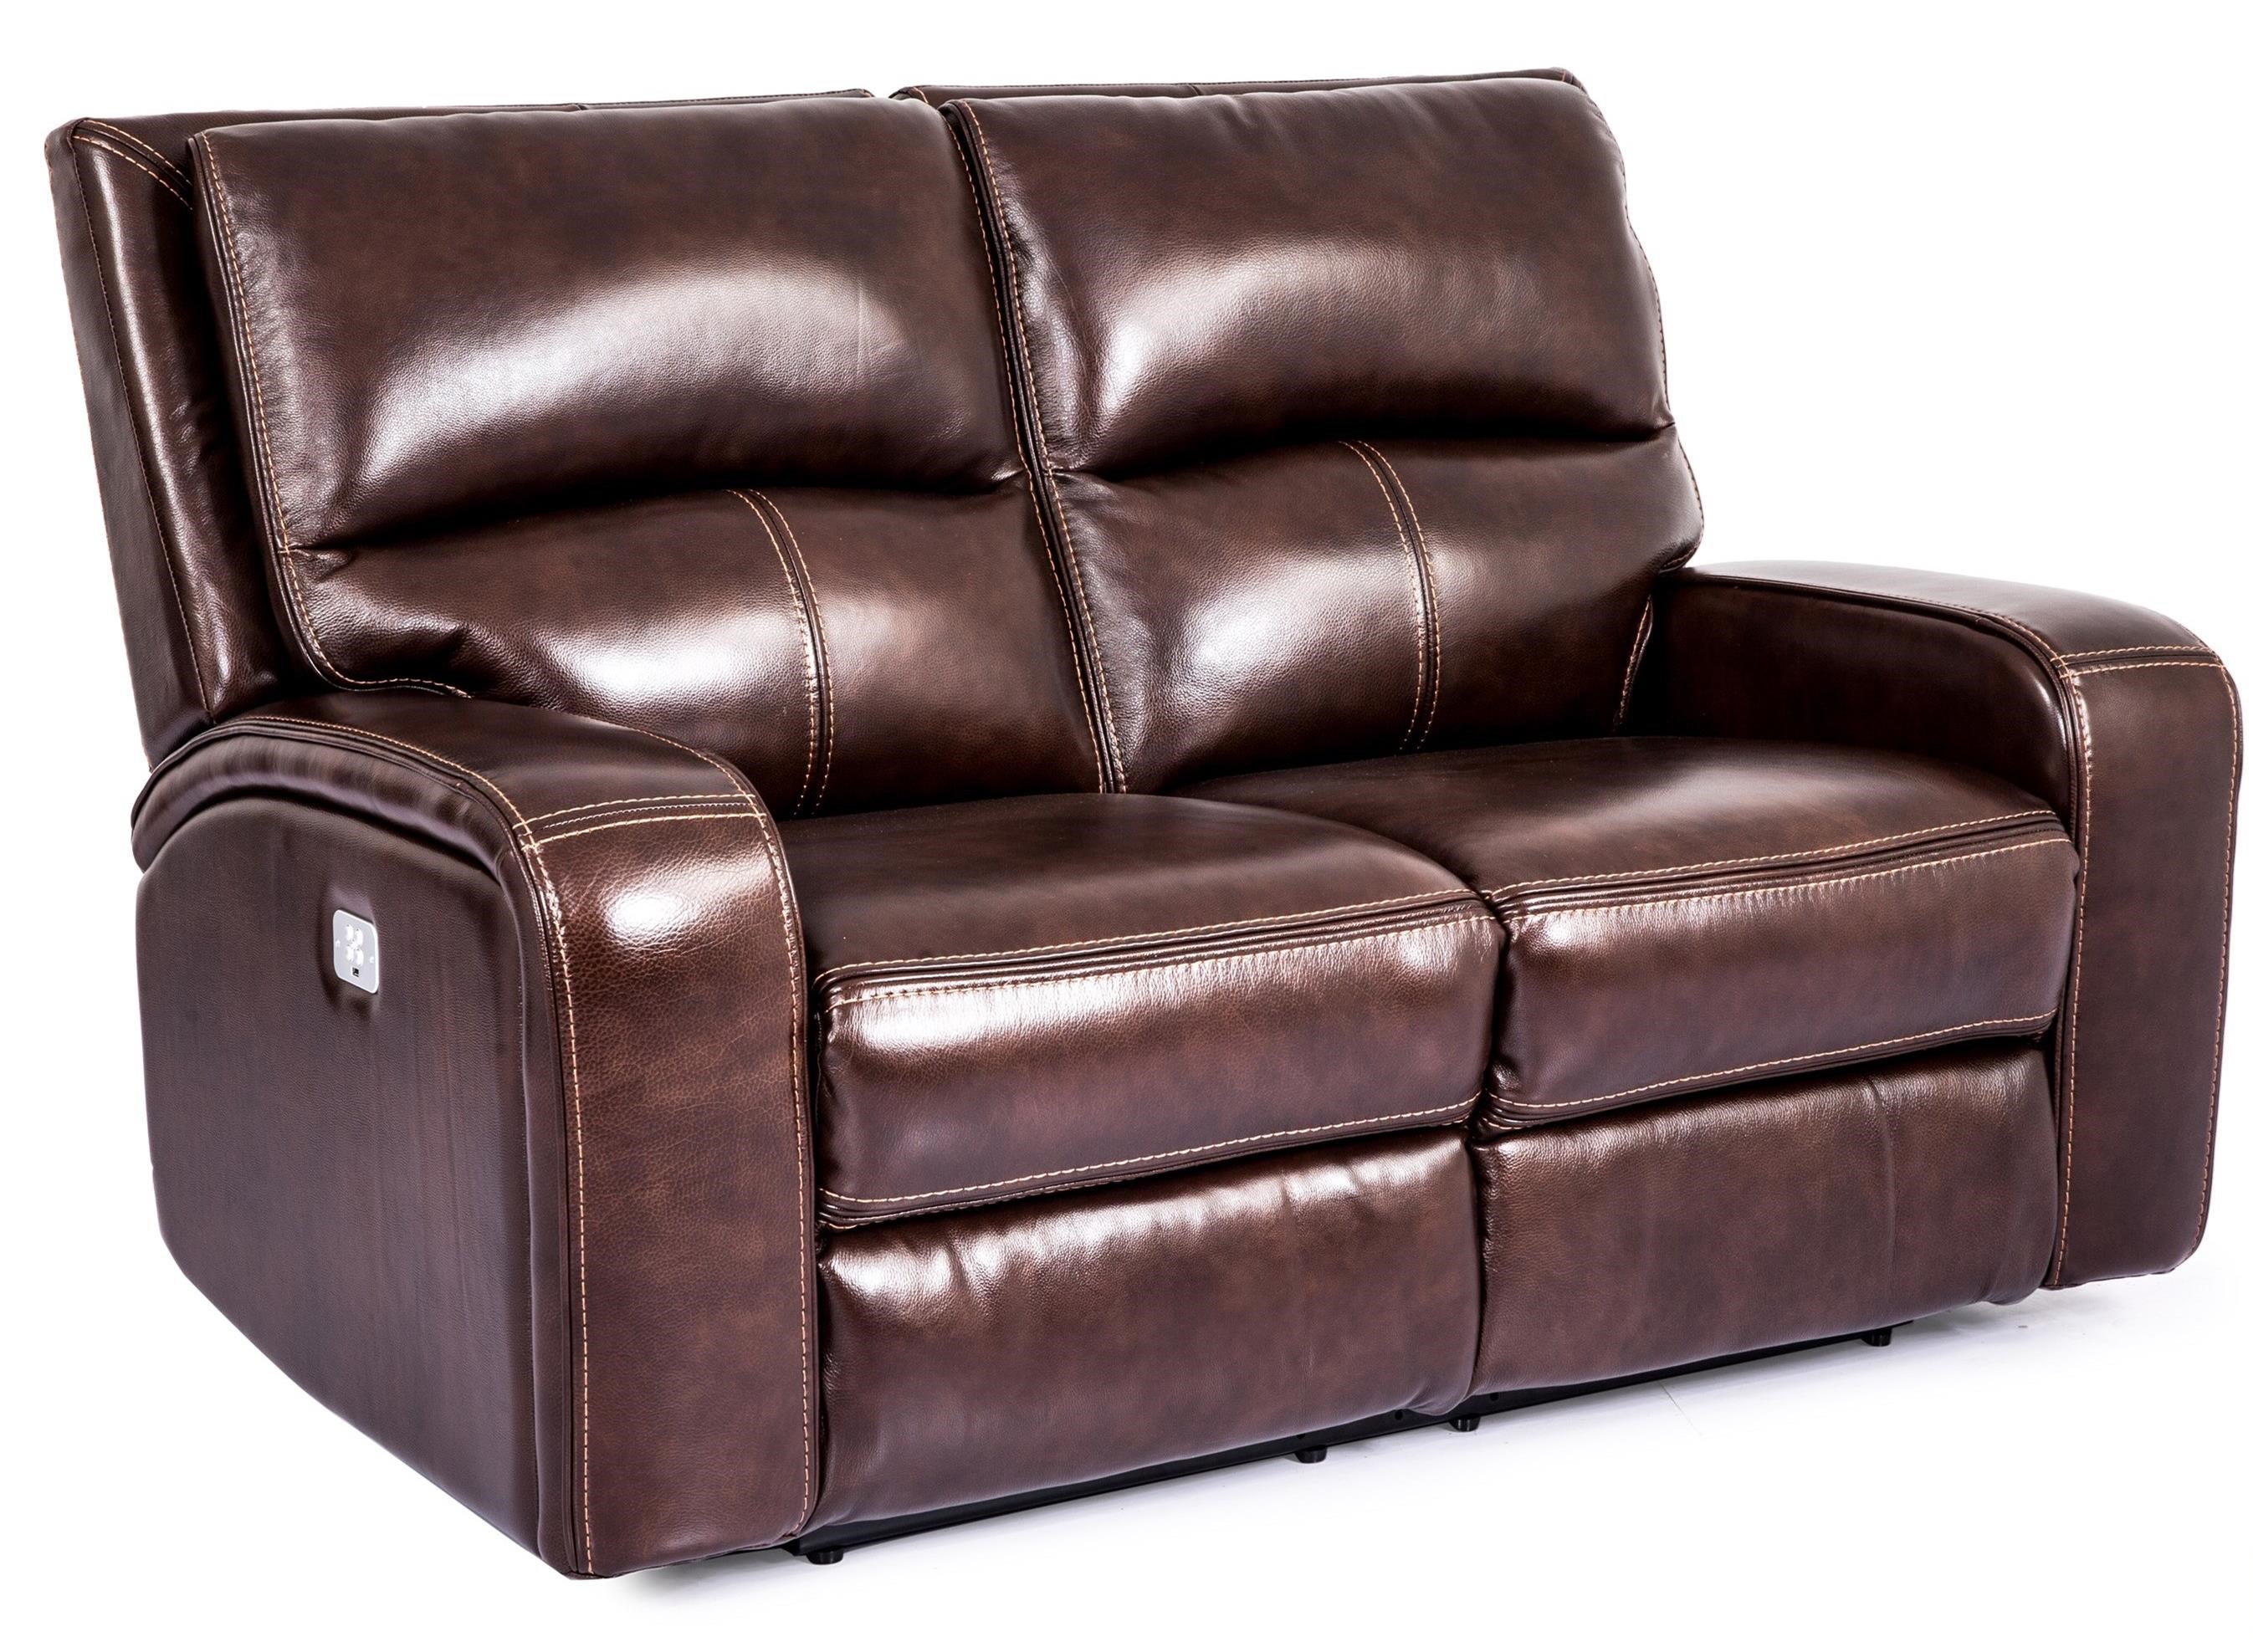 5168HM Power Reclining Loveseat by Cheers at Lagniappe Home Store